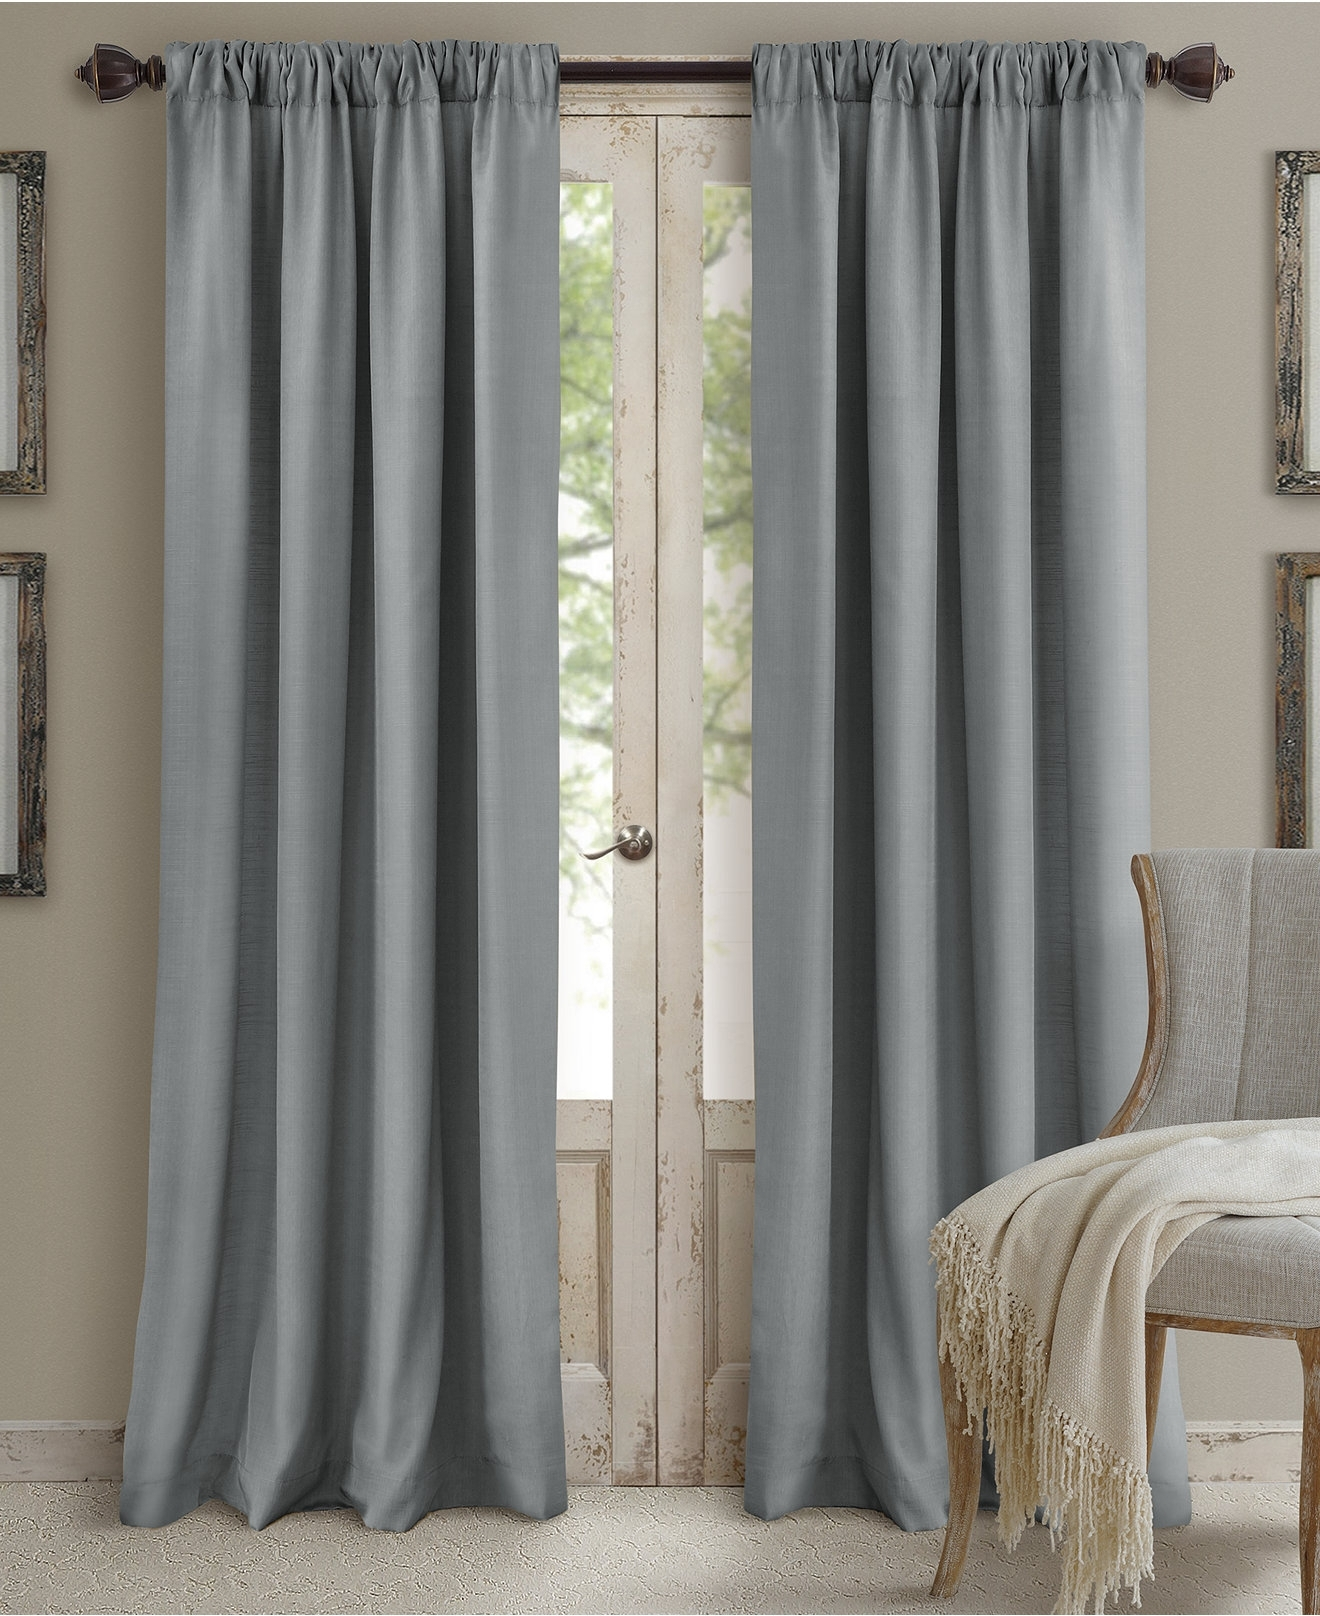 Newest Decor: Grey Macys Curtains Design Ideas With Wall Art Plus Wooden With Regard To Macys Wall Art (View 14 of 15)